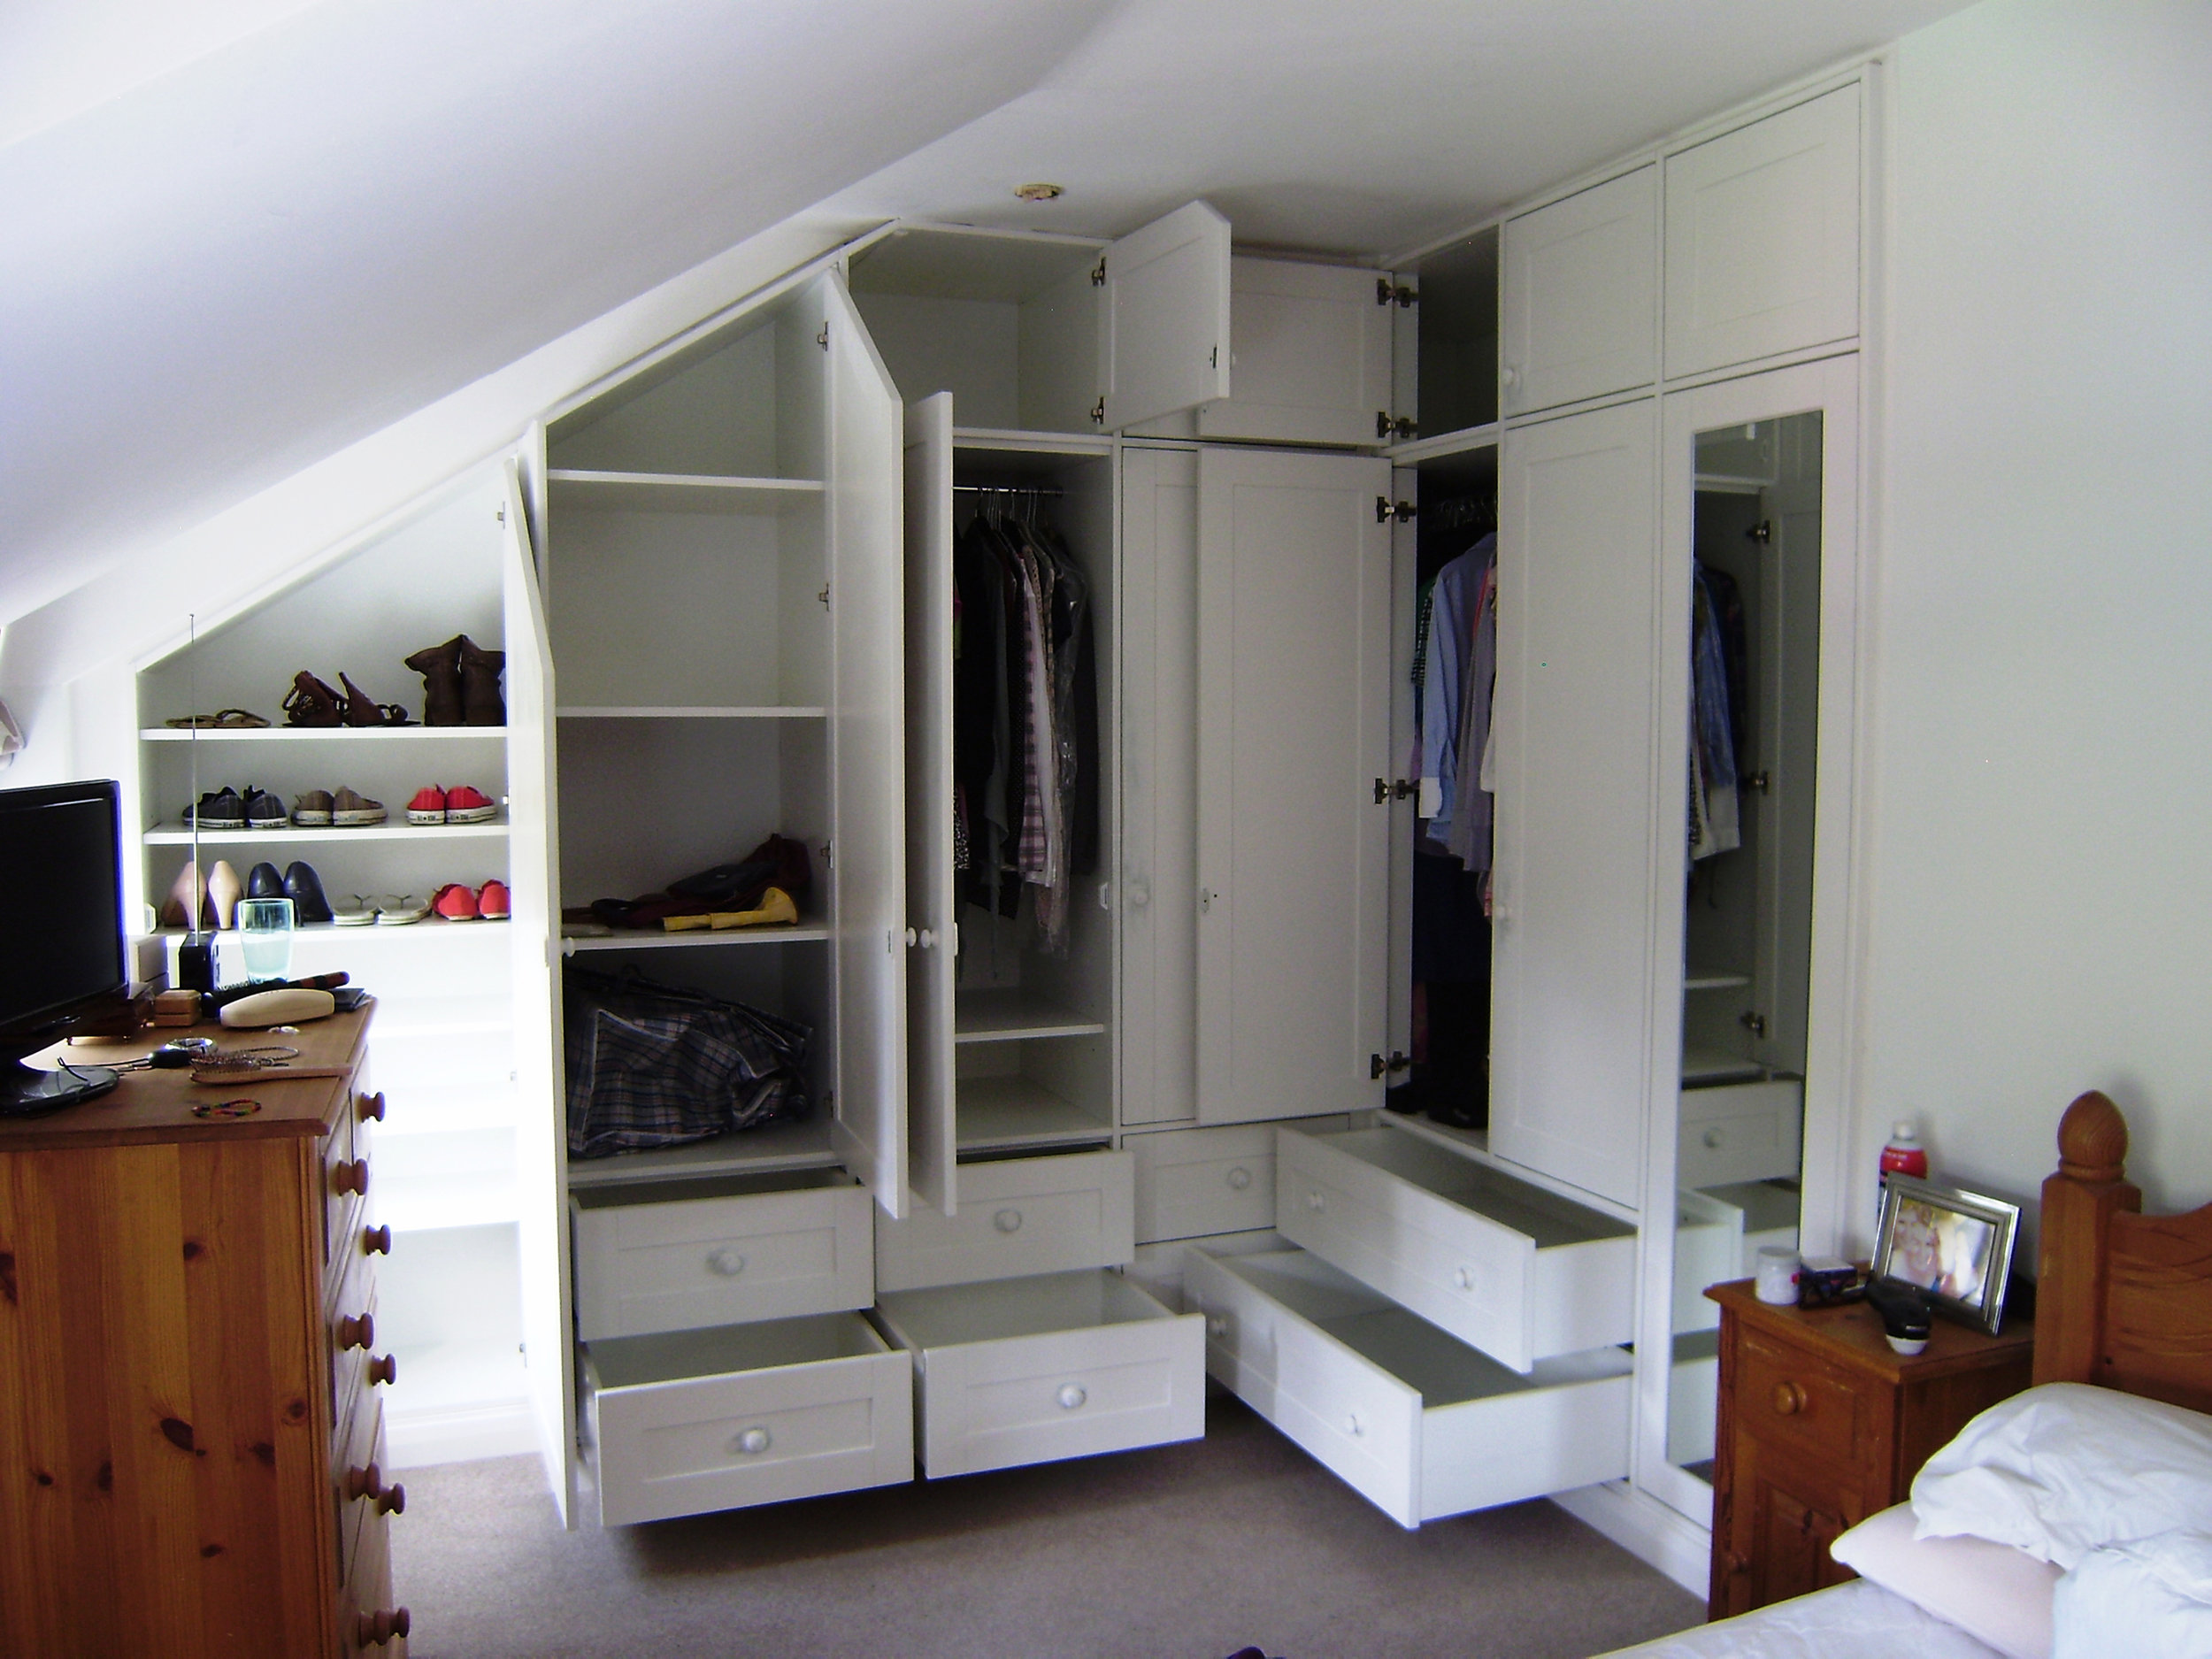 - The interior has full and half height hanging, general storage, shelving, drawers and a shoe cupboard.